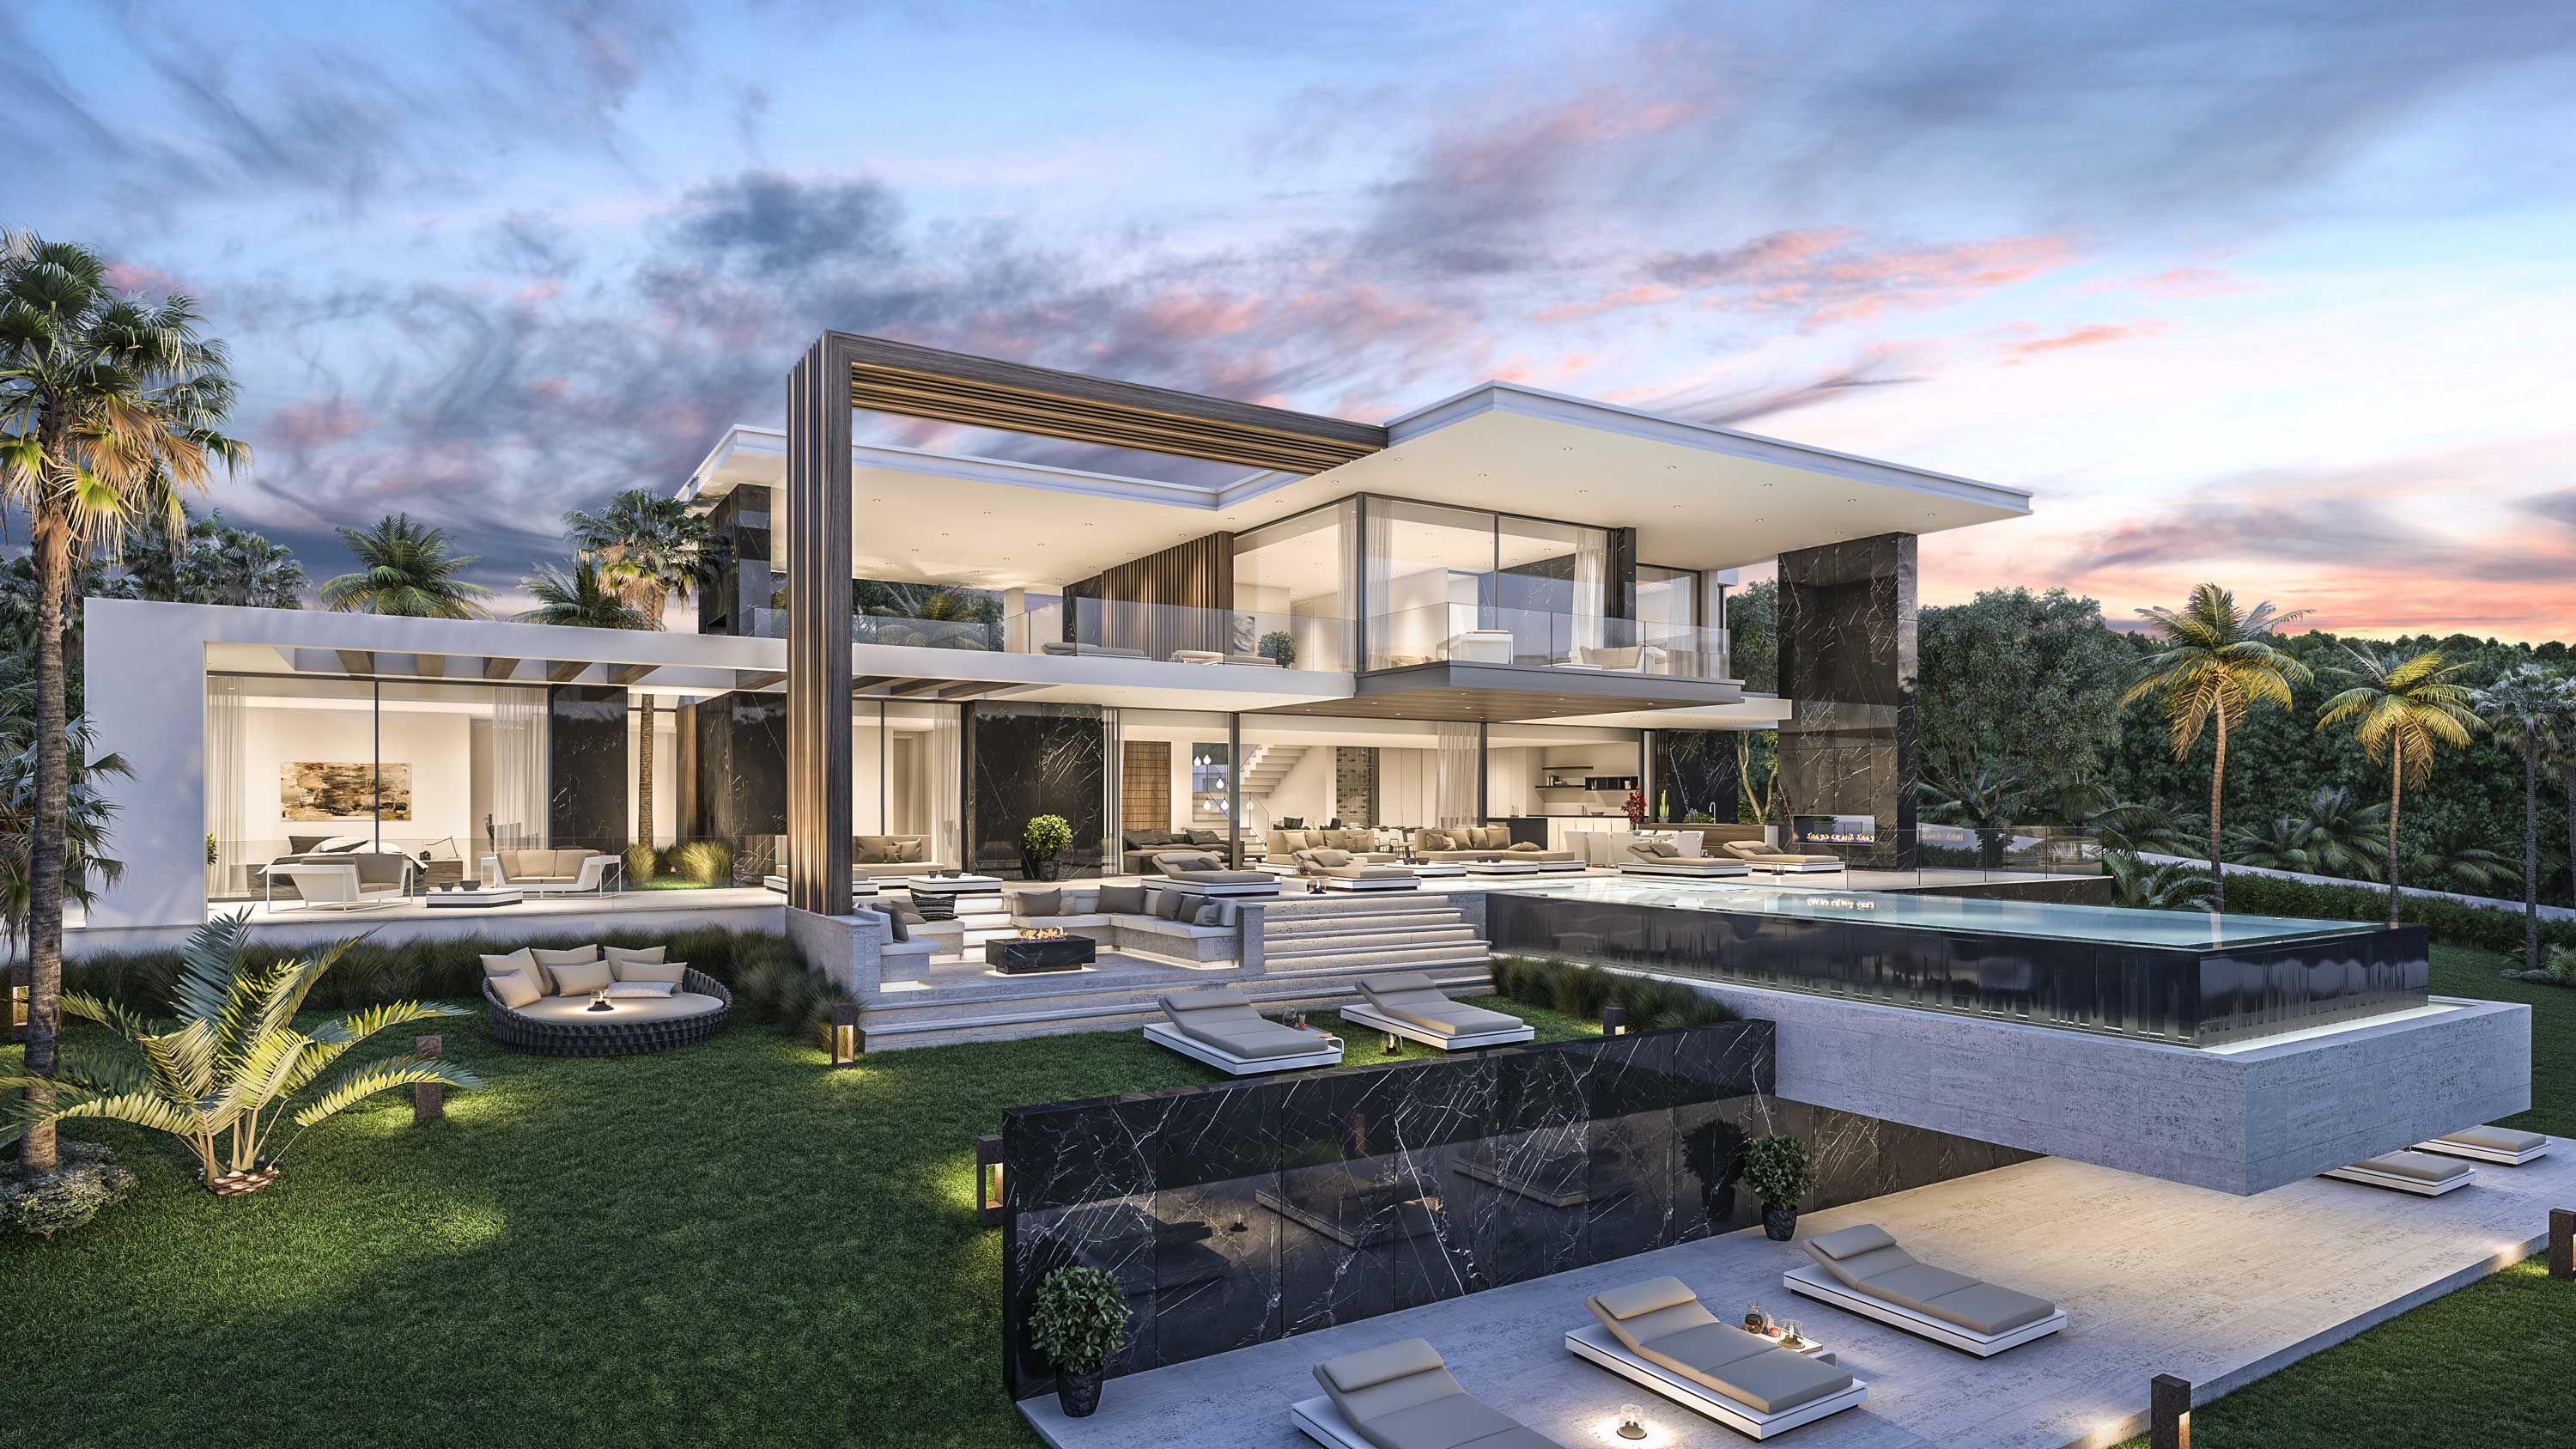 Architecture And Development Luxury Villa In California Usa Builders Construction Architects In Marbel Luxury Homes Dream Houses Mansions Exterior Design